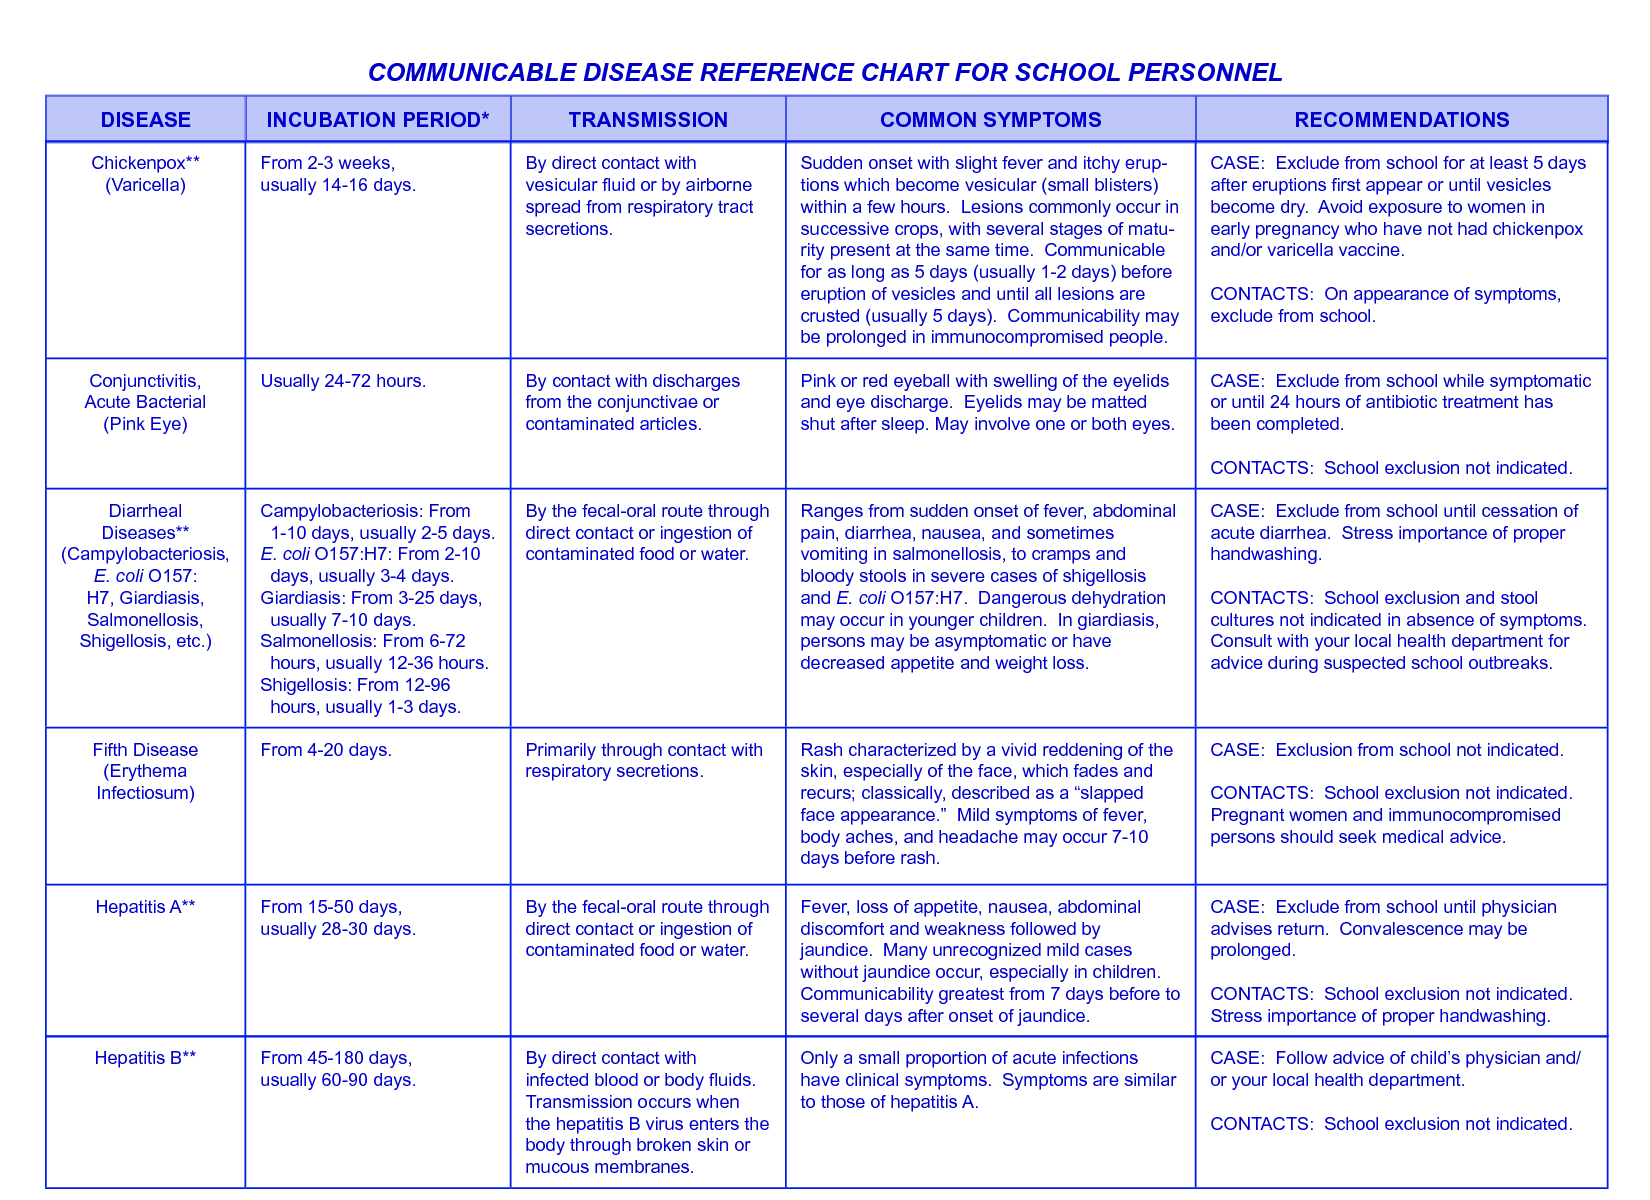 Preventing Communicable and Noncommunicable Diseases